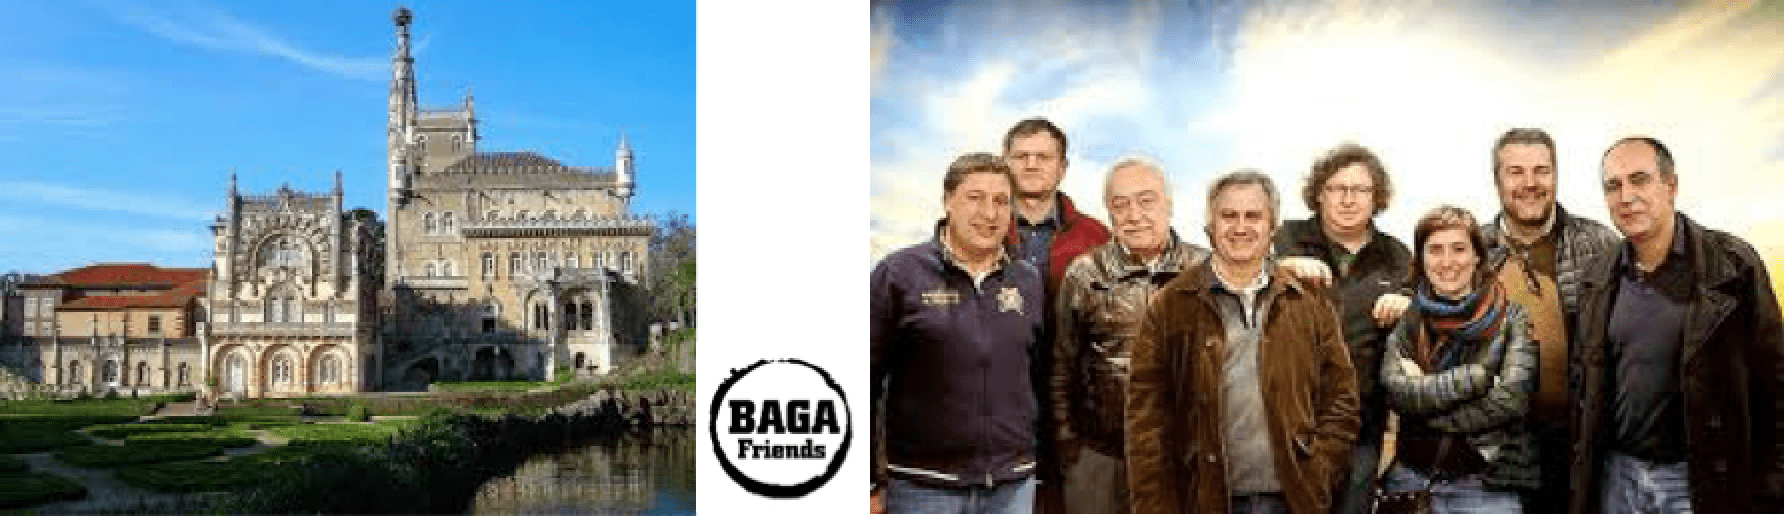 Baga friends